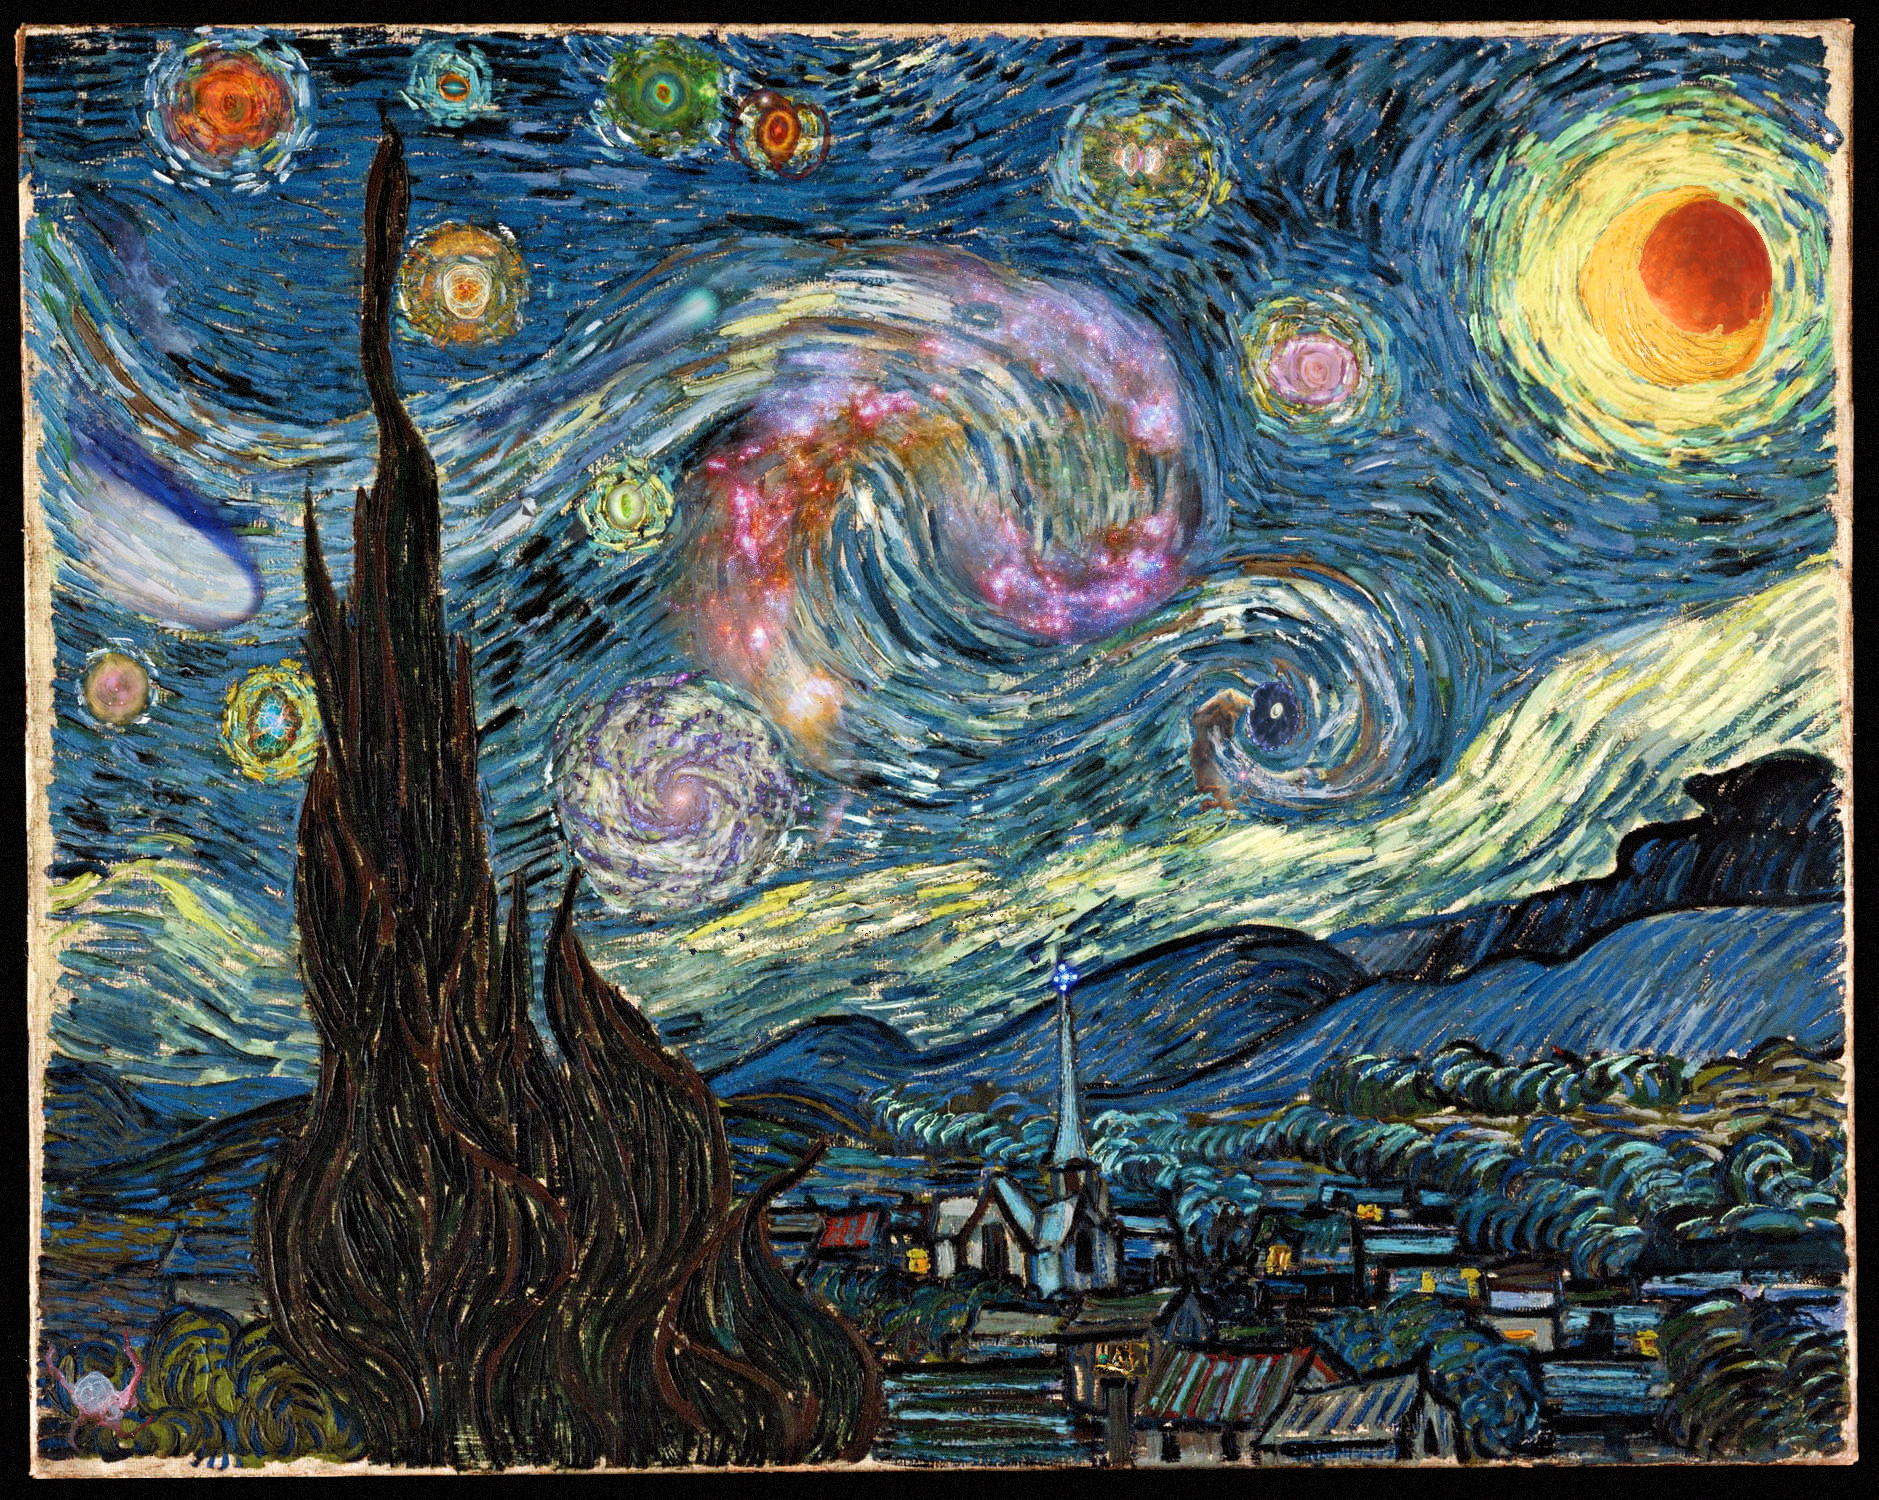 APOD: 2010 June 15 - Starry Night Scavenger Hunt